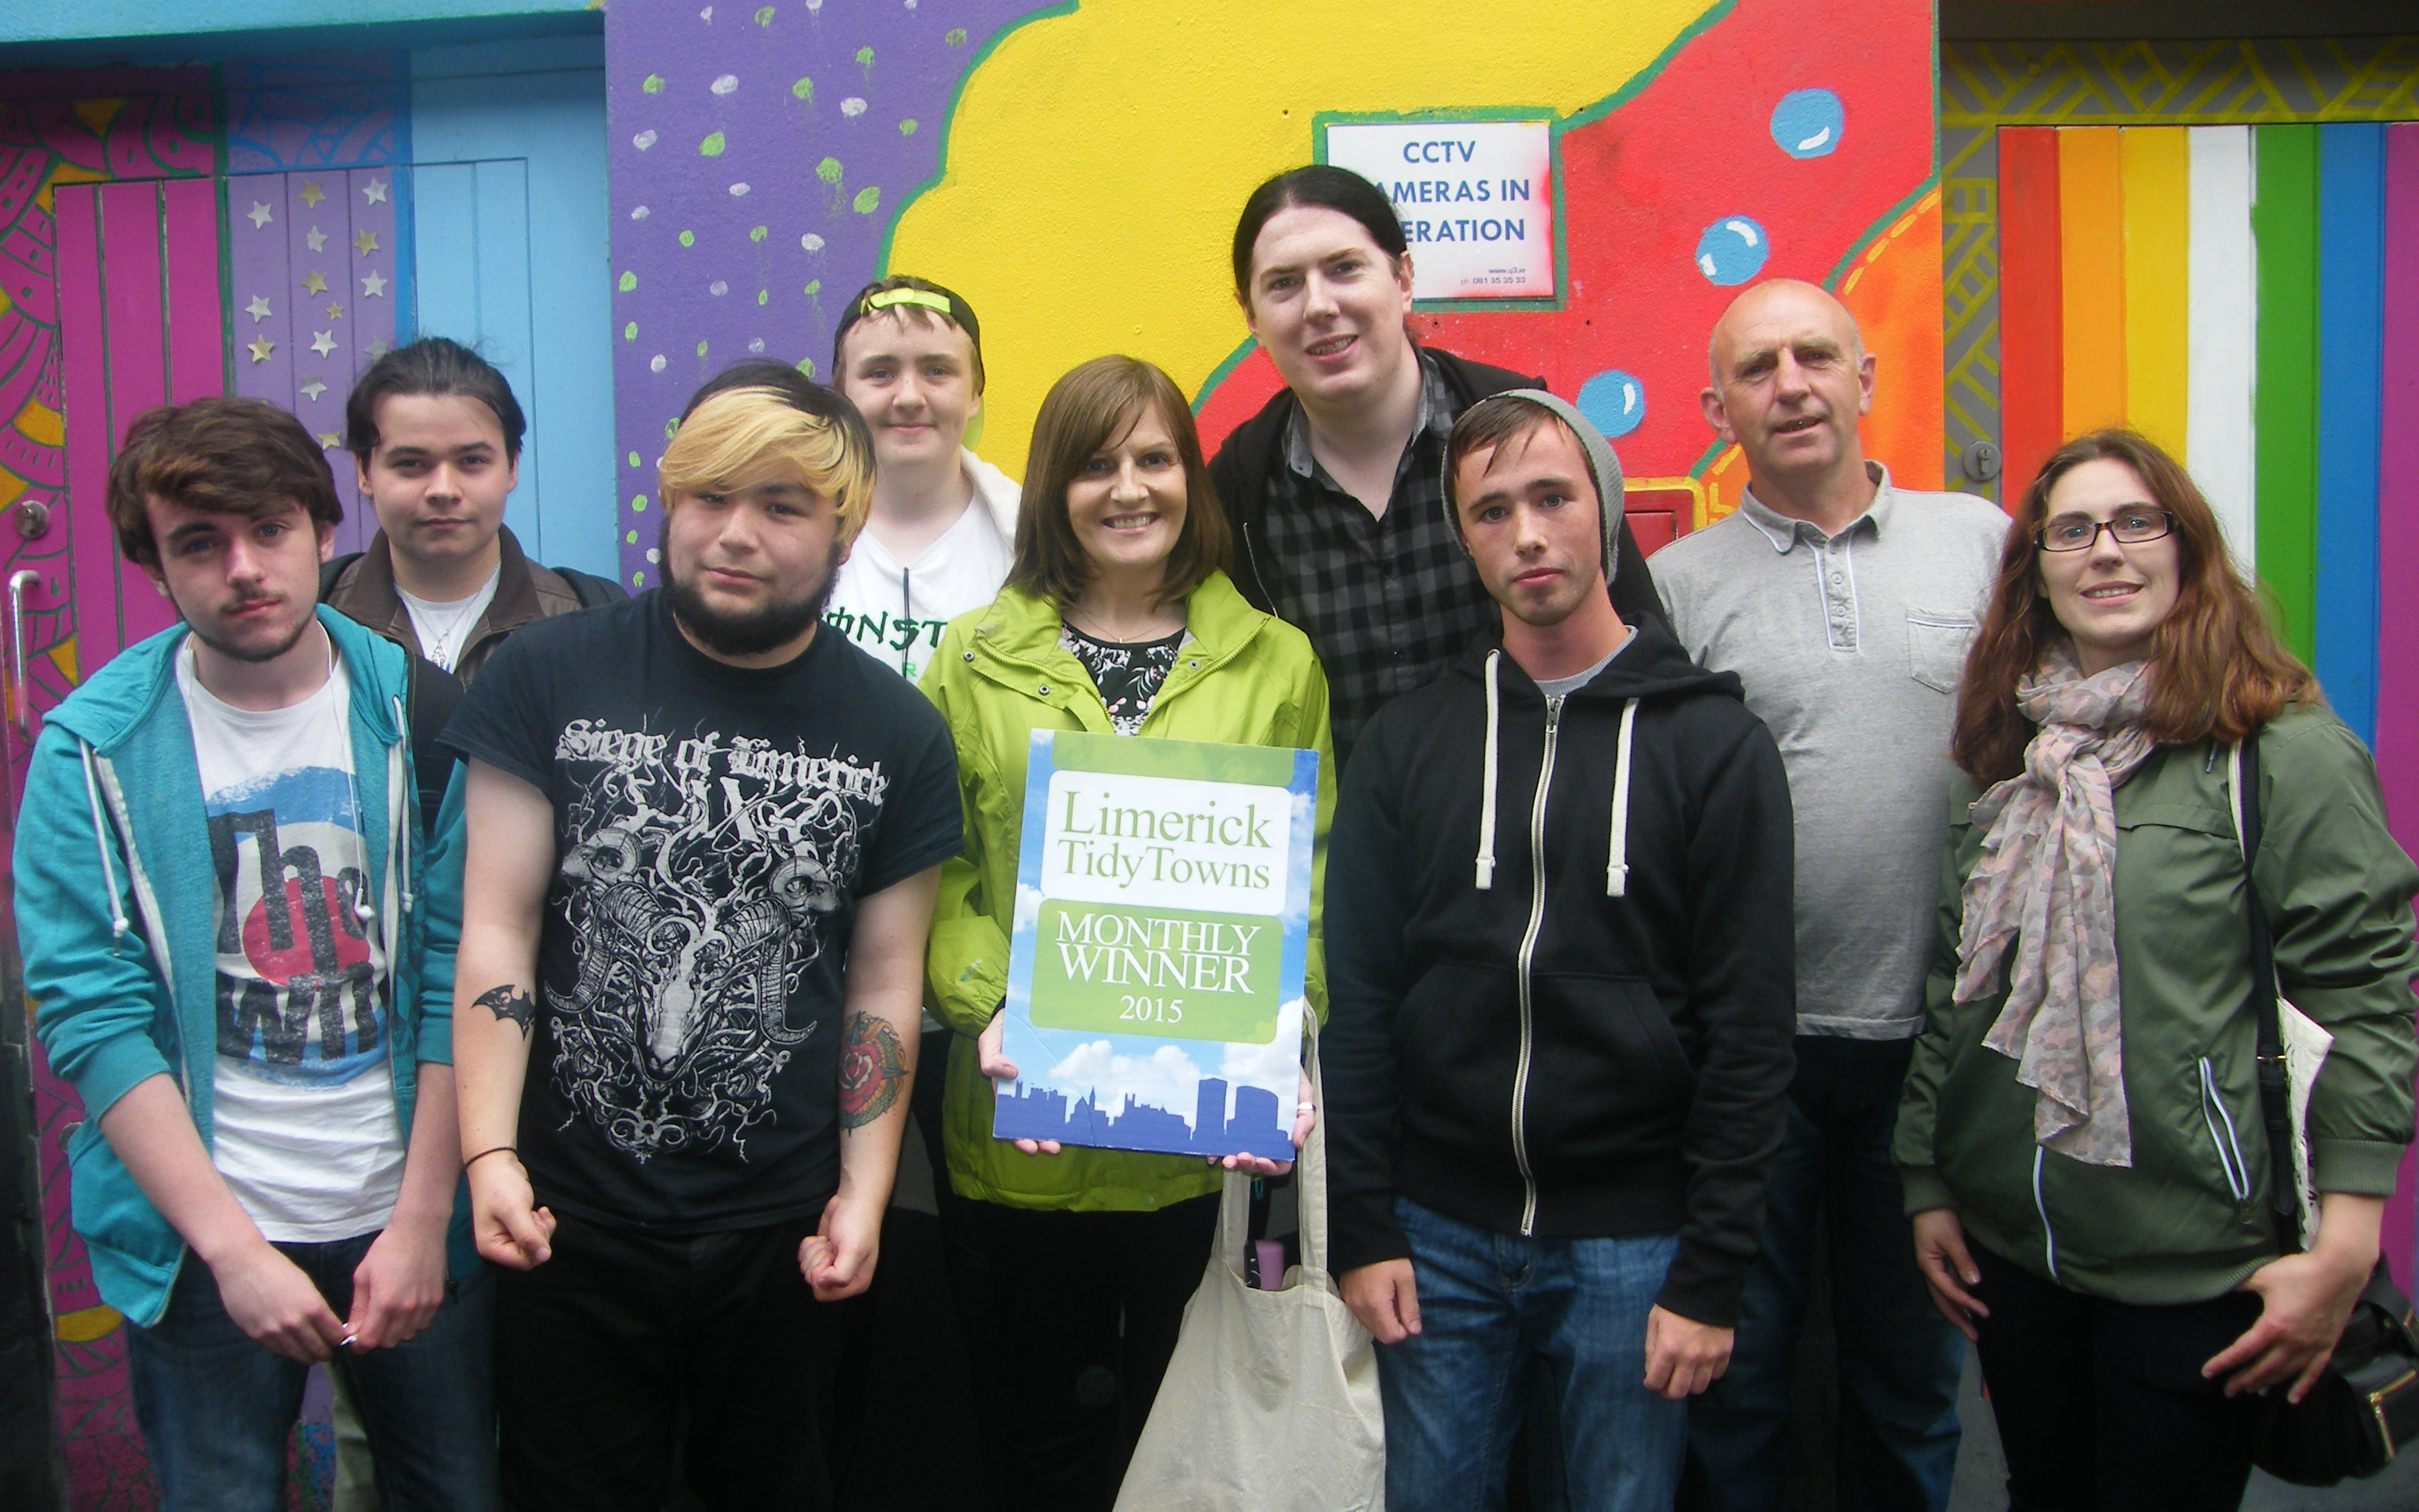 Limerick Youth Service wins award from Limerick Tidy Towns for July